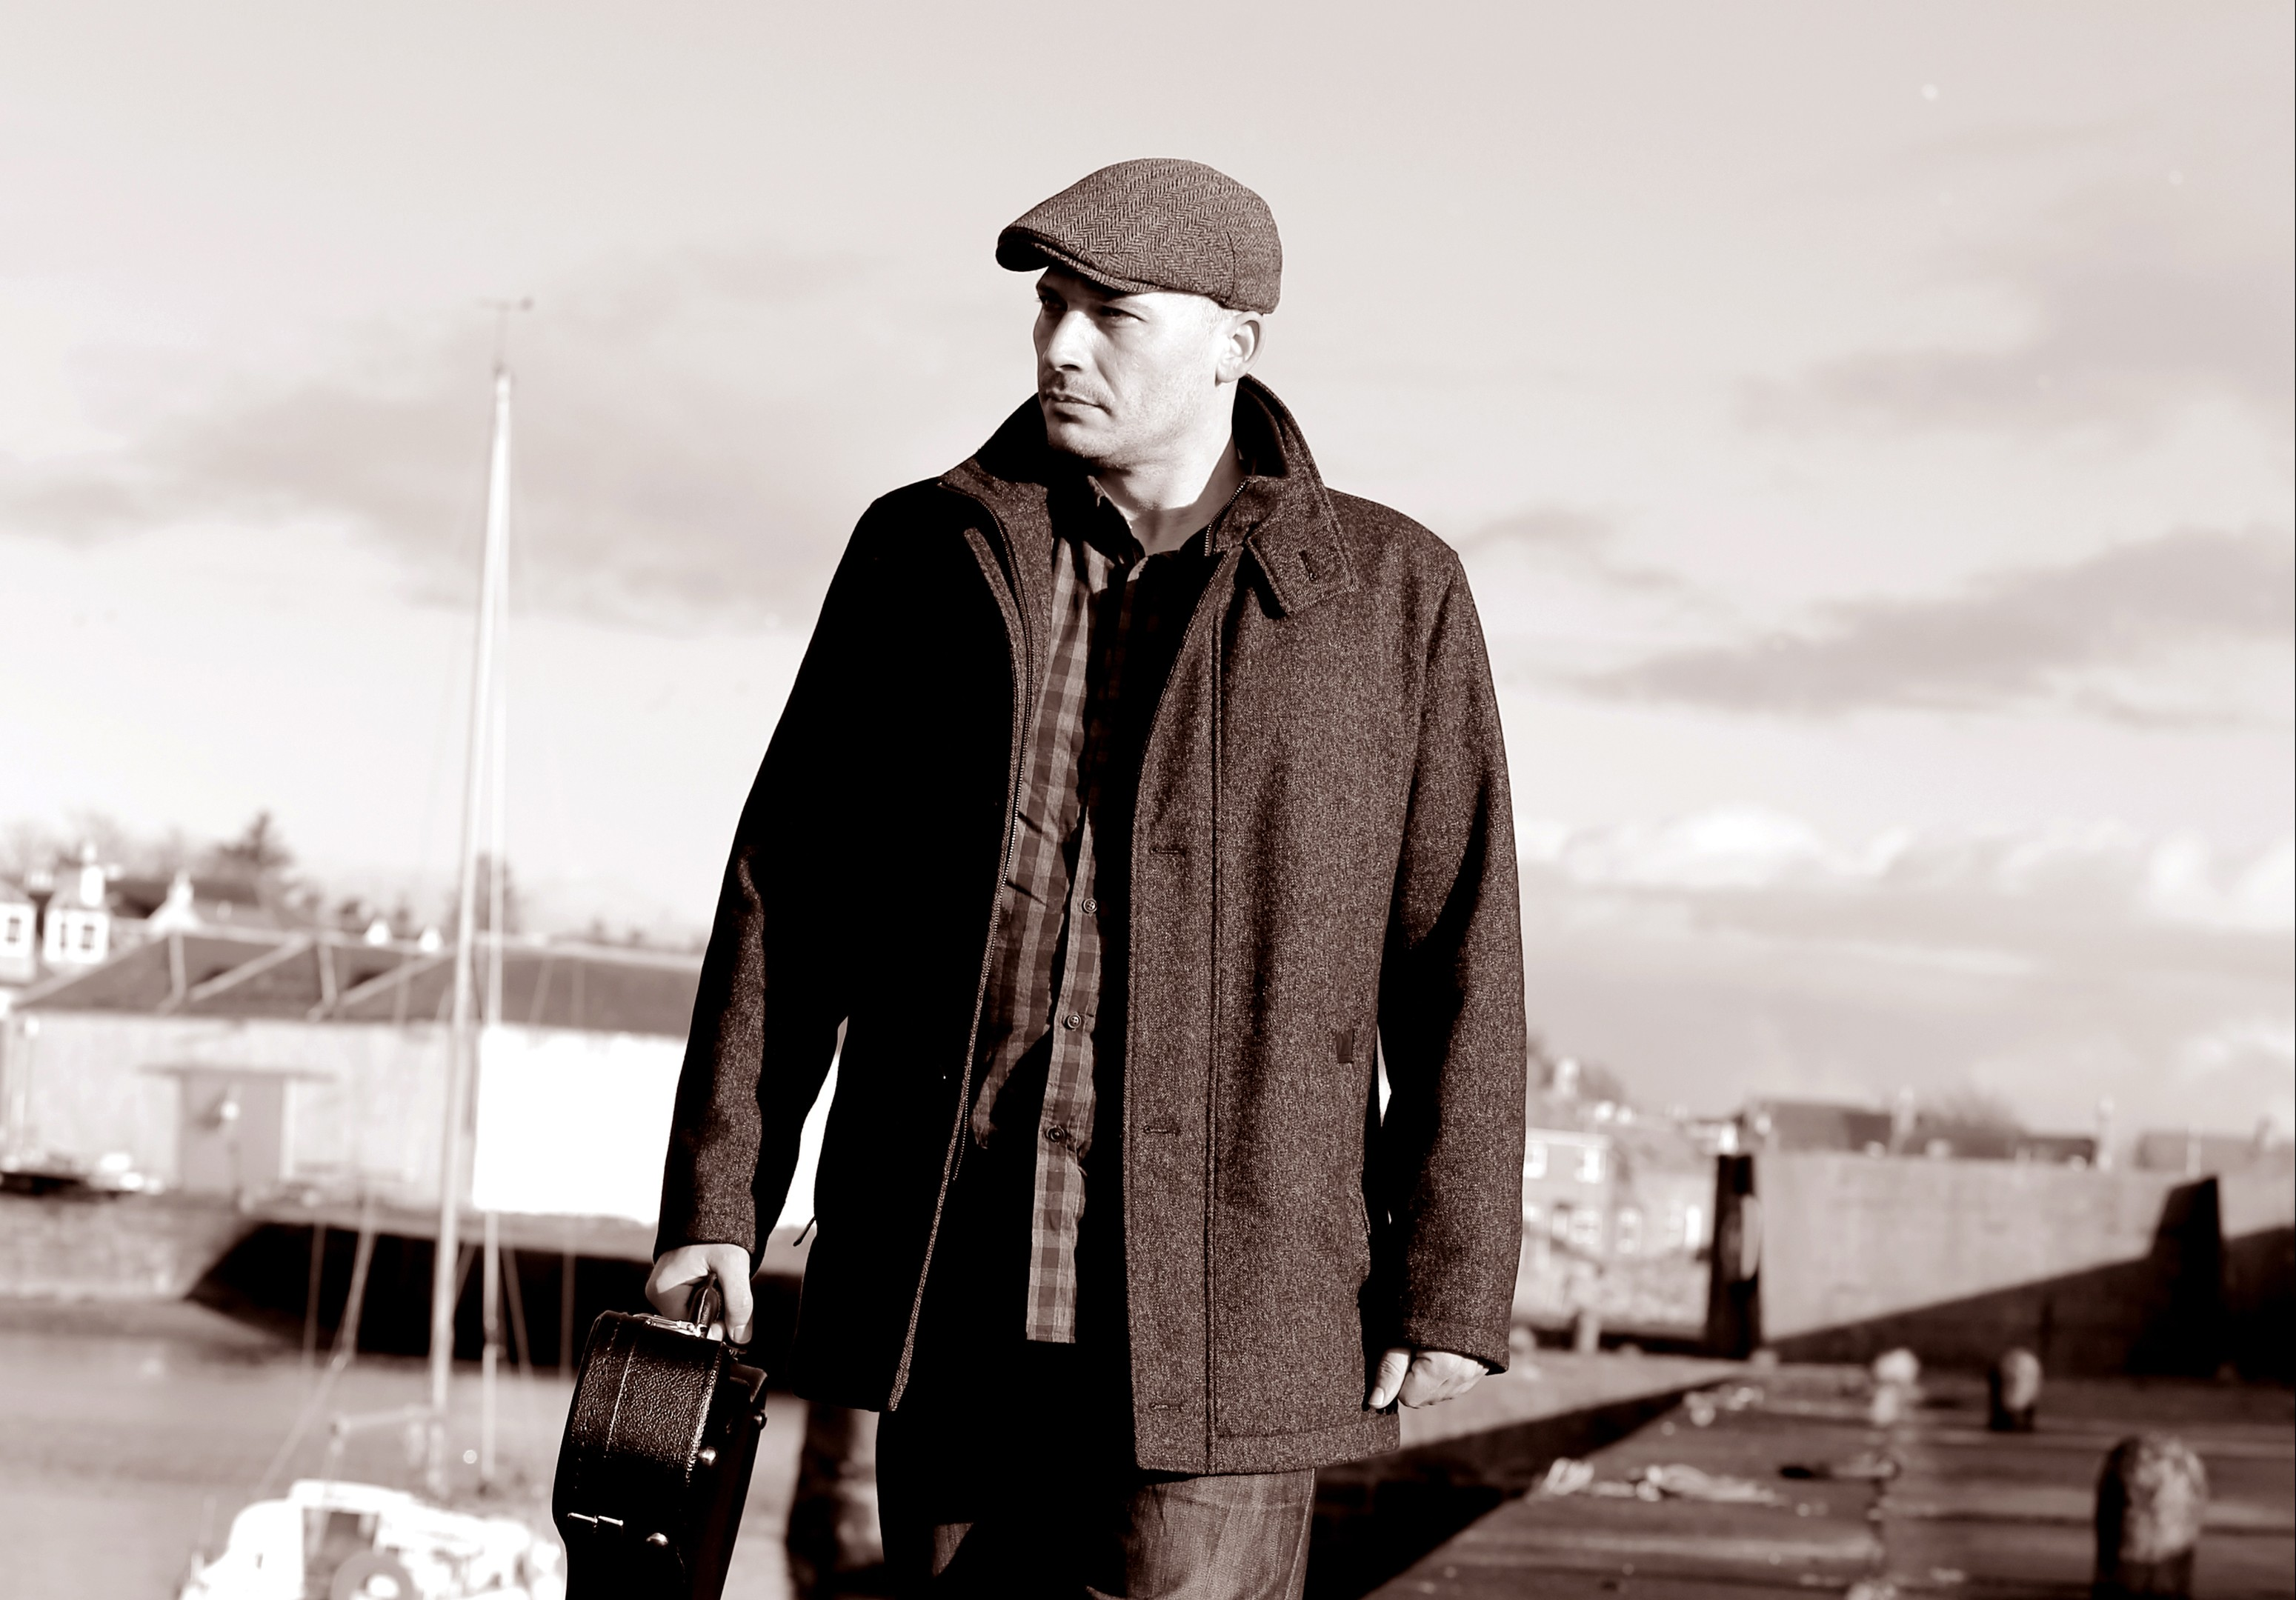 North-east musician Pete Coutts